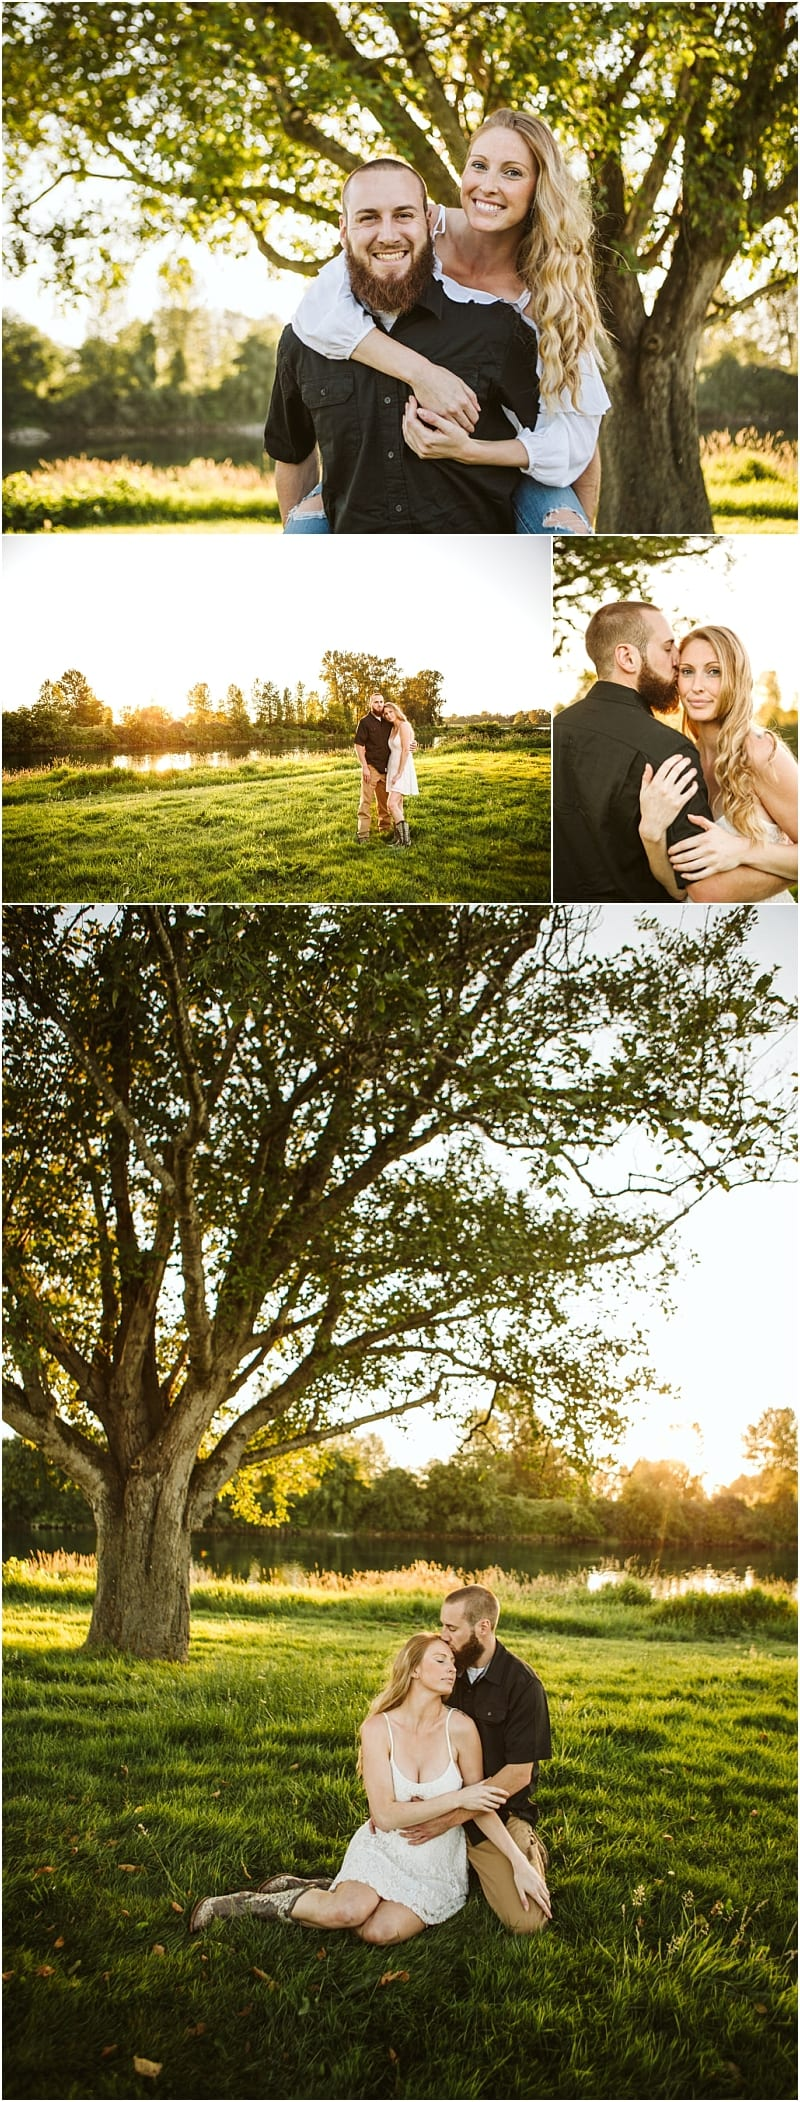 snohomish wedding photo 6480 Seattle and Snohomish Wedding and Engagement Photography by GSquared Weddings Photography